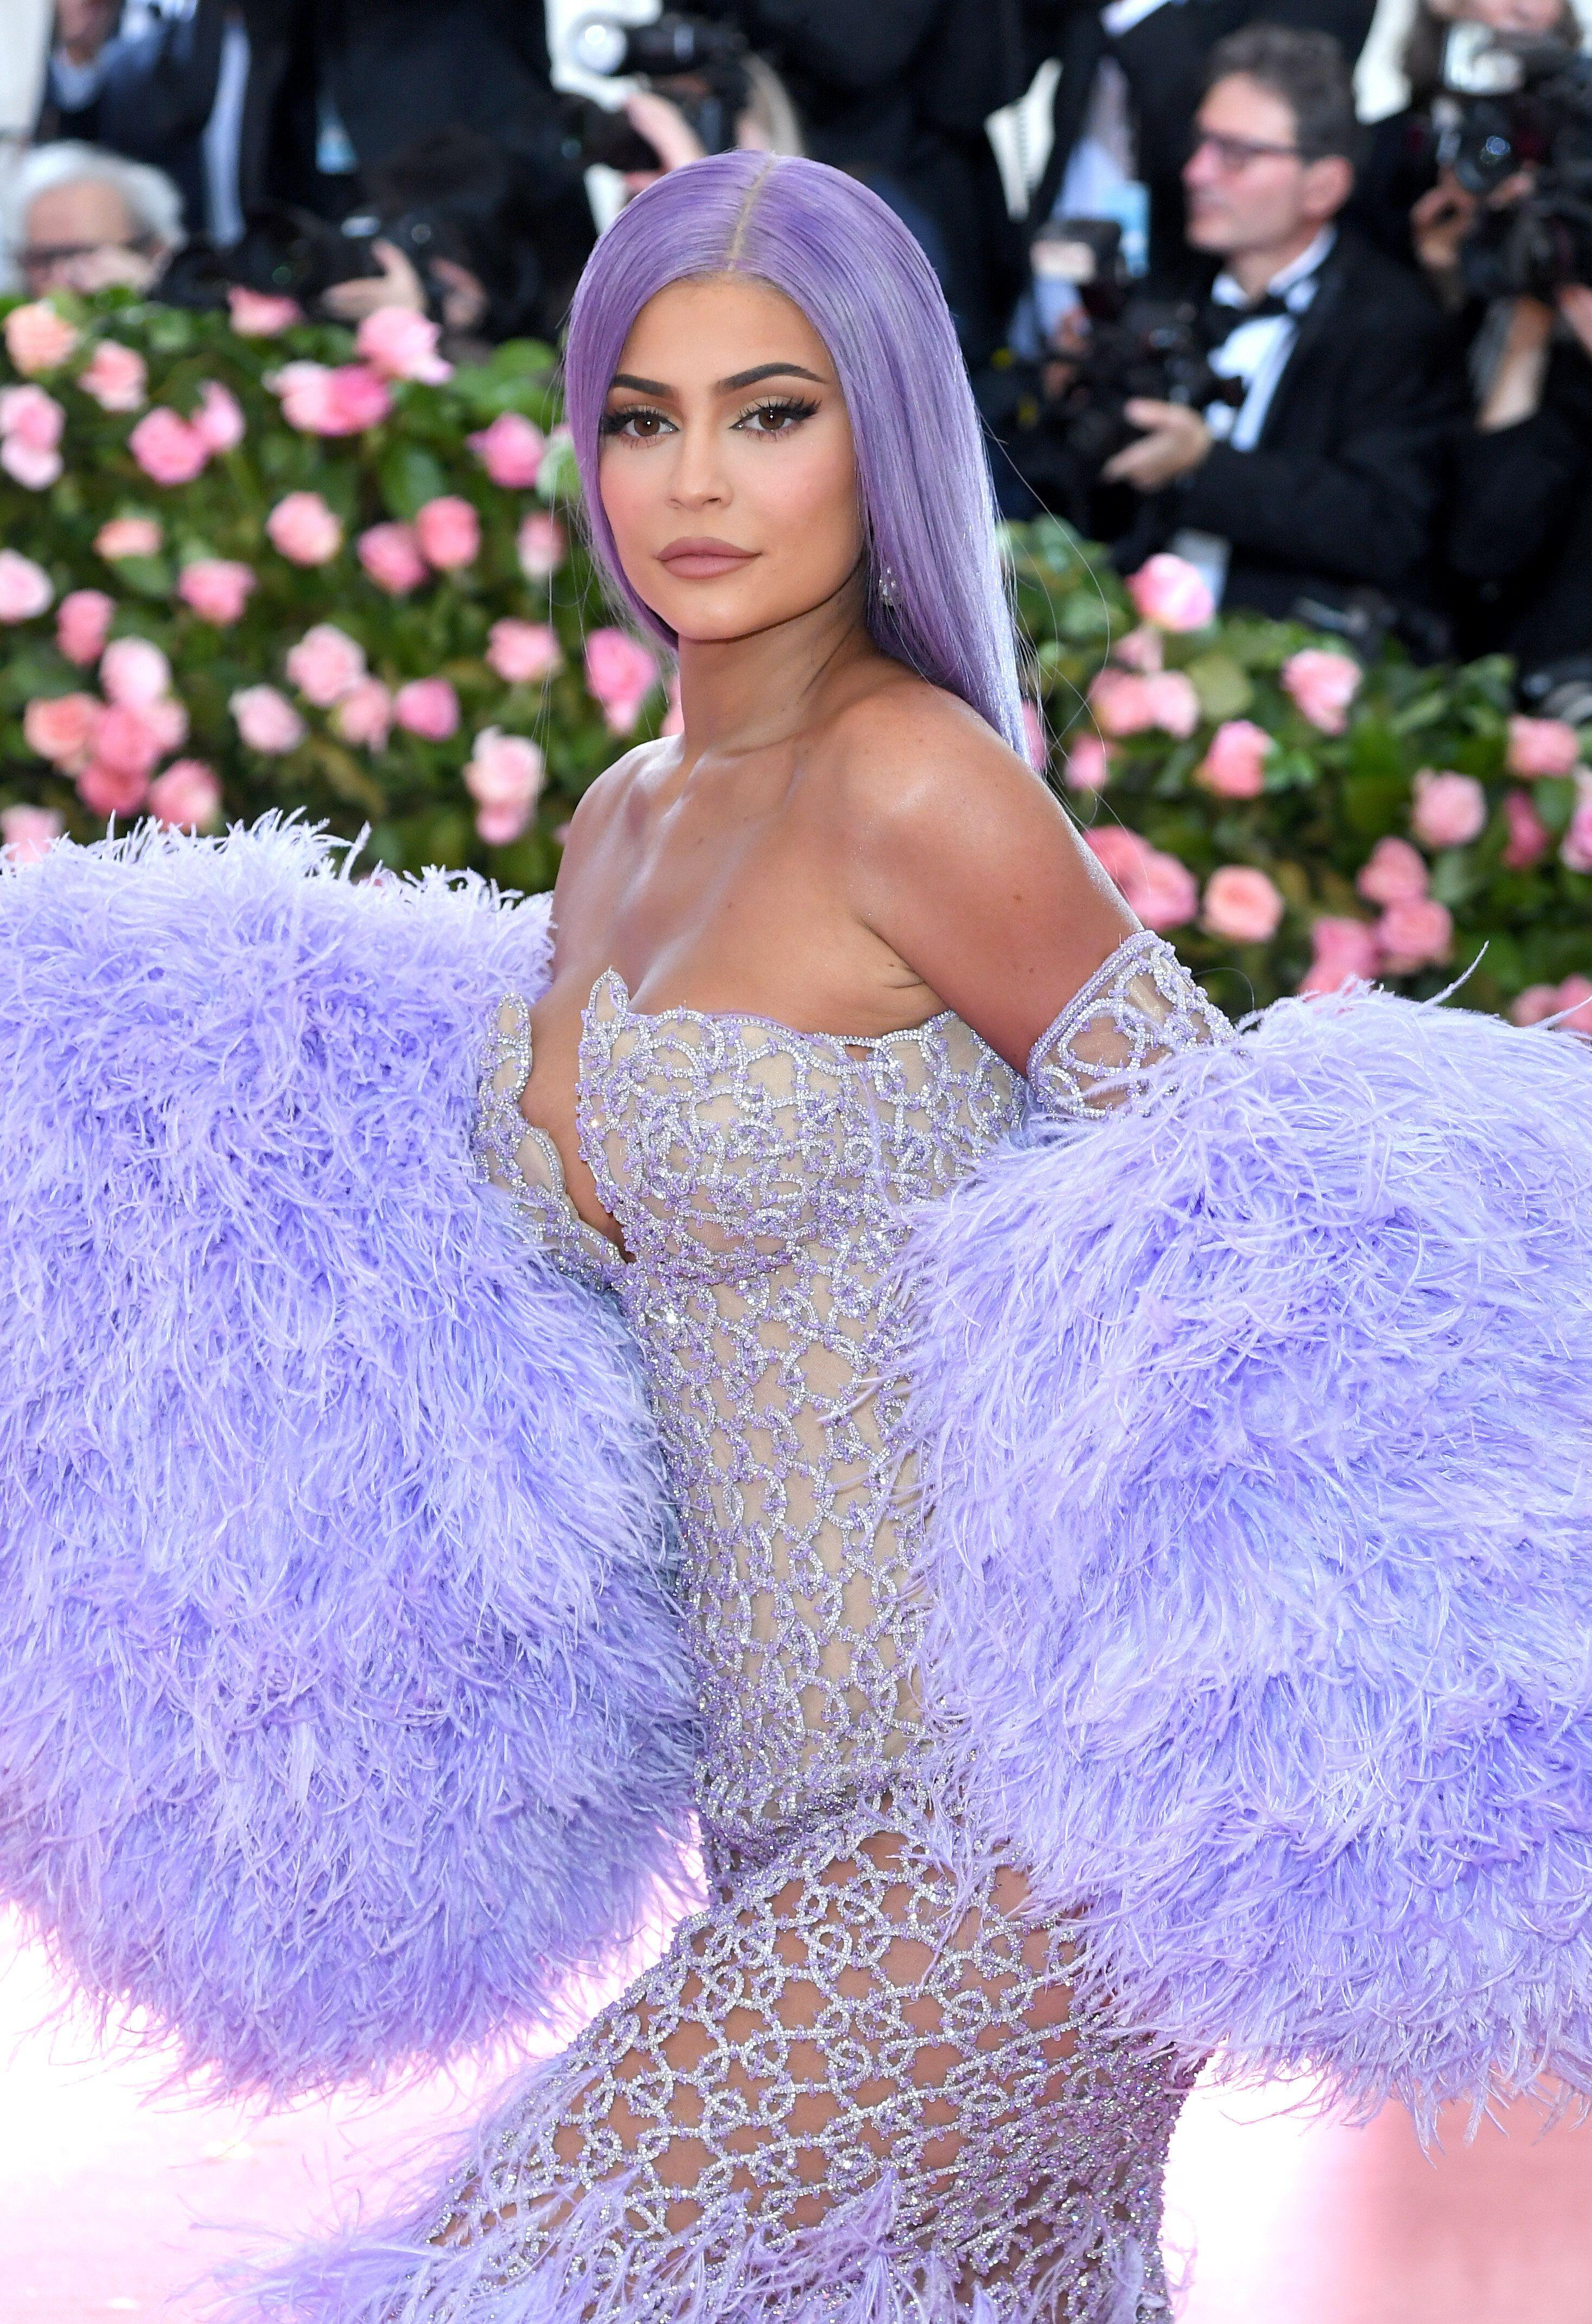 Kylie Jenner slammed for new skin care line: 'Why is Kylie trying to destroy our skin?'